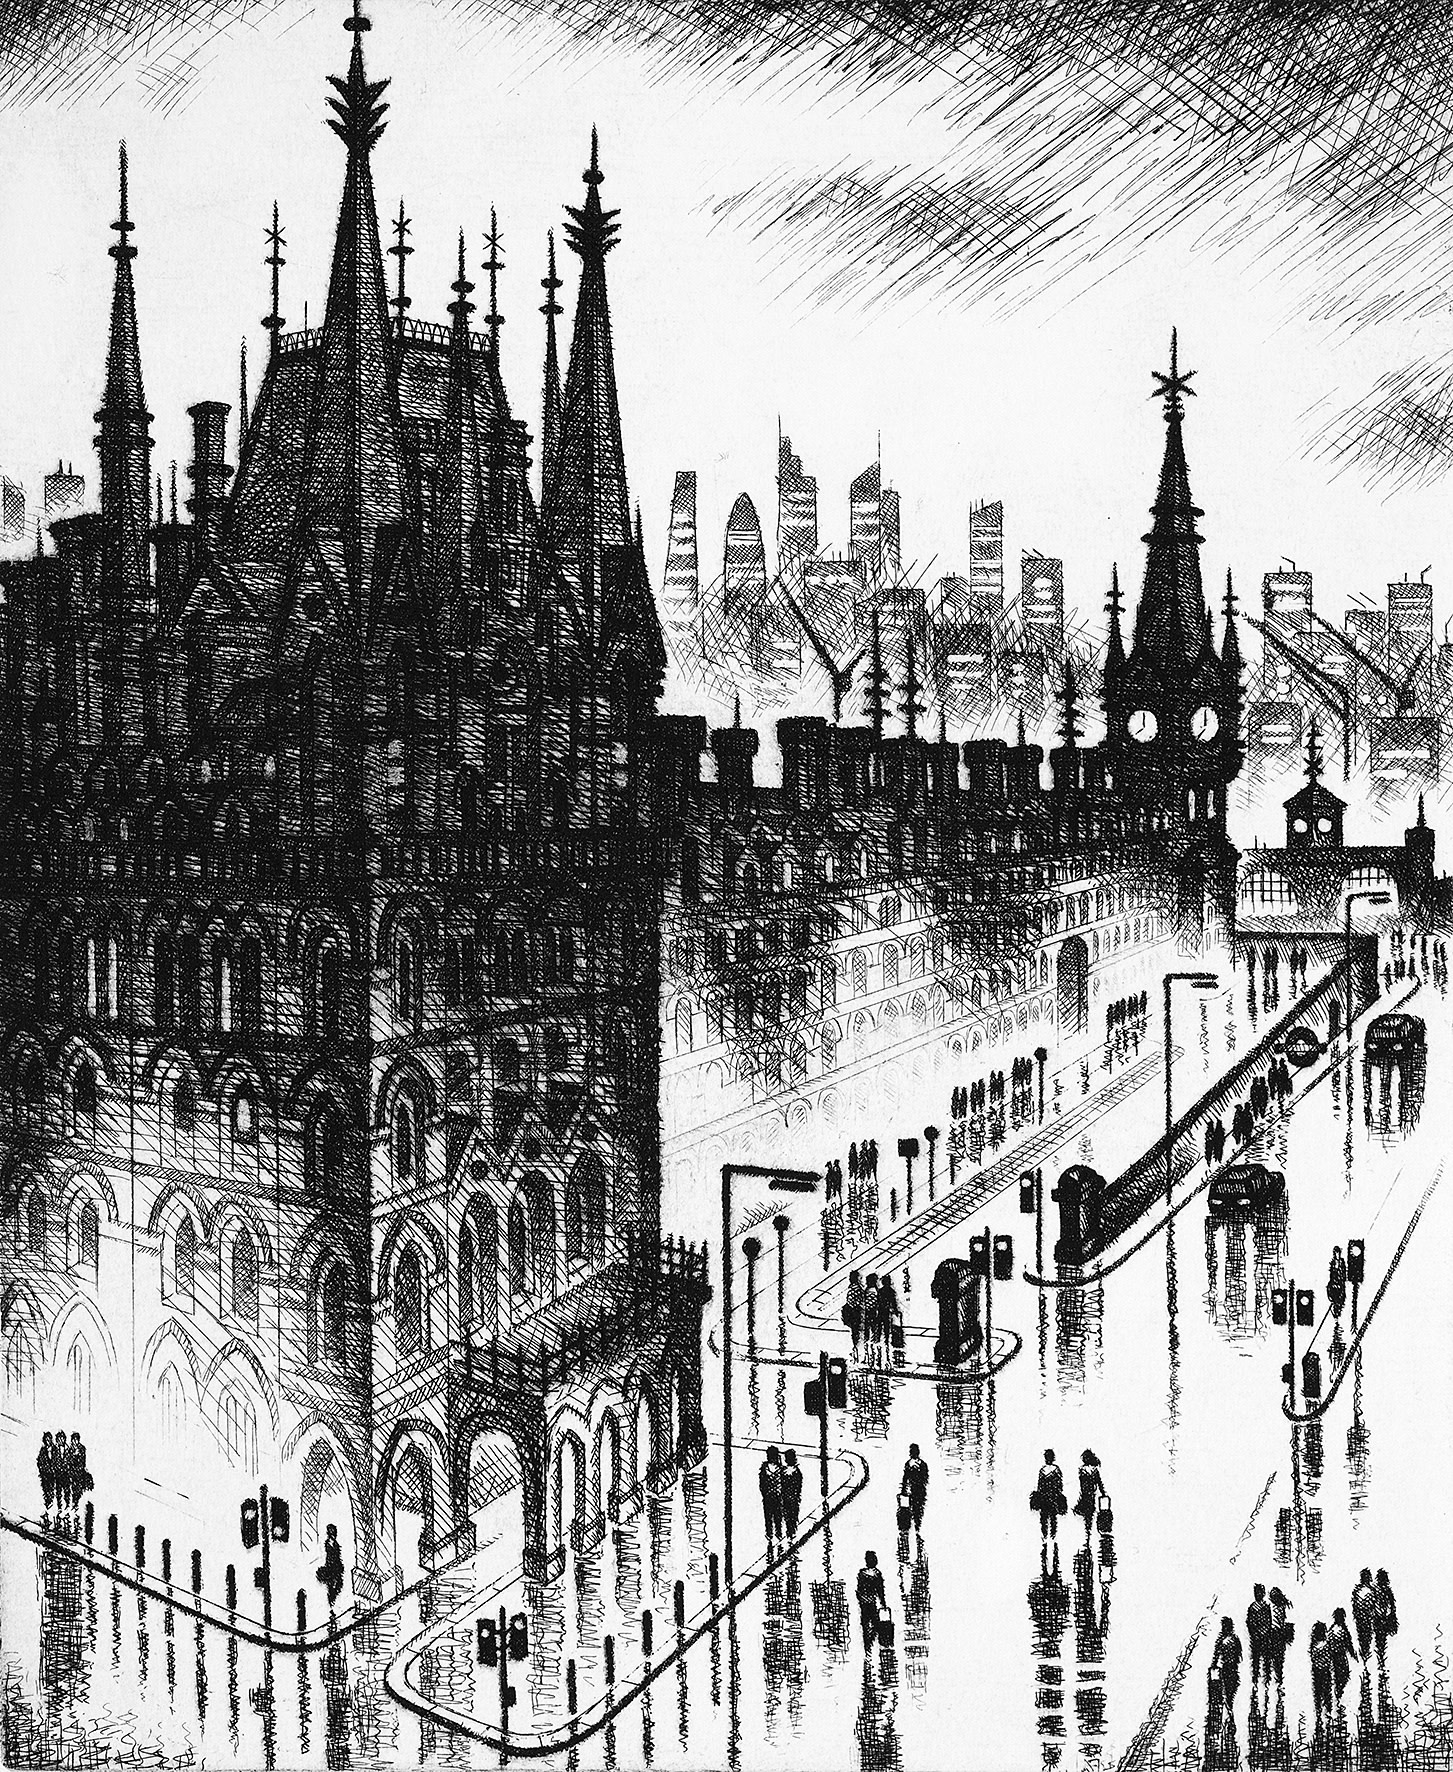 """<span class=""""link fancybox-details-link""""><a href=""""/exhibitions/11/works/image_standalone138/"""">View Detail Page</a></span><p>JOHN DUFFIN RE</p><p></p><p><em>King's Cross Rain</em>, 2017</p><p>etching</p><p>Inspired by Walter Richard Sickert RE</p><p></p><p>Part of the Print REbels Portfolio</p><p></p><p>""""My etching <i>King's Cross Rain</i> is a reference to <b>Walter Richard Sickert RA ARE (1860-1942)</b>'s etching <i>Sussex Place, Regent's Park</i> in which the pared back use of line to describe form, light and mood is achieved with masterly simplicity.""""</p>"""